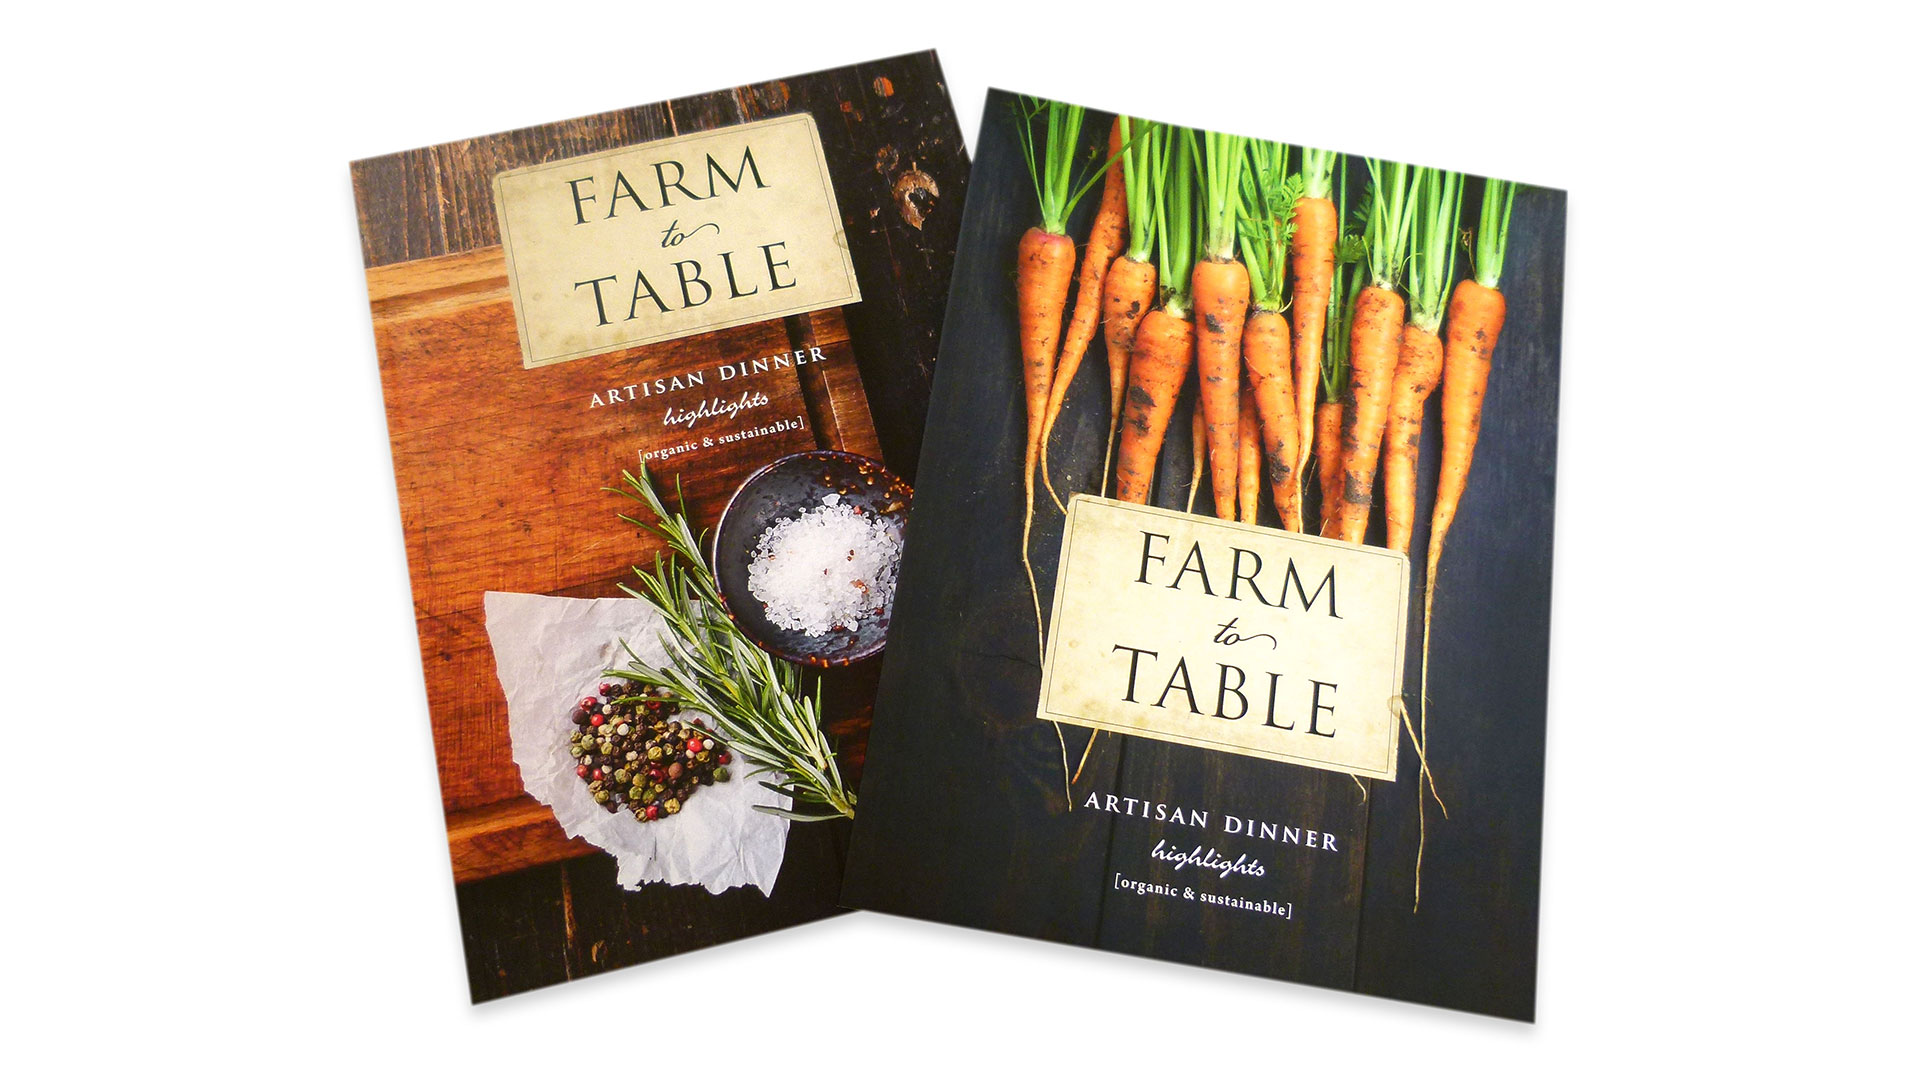 790-farmtotable-1